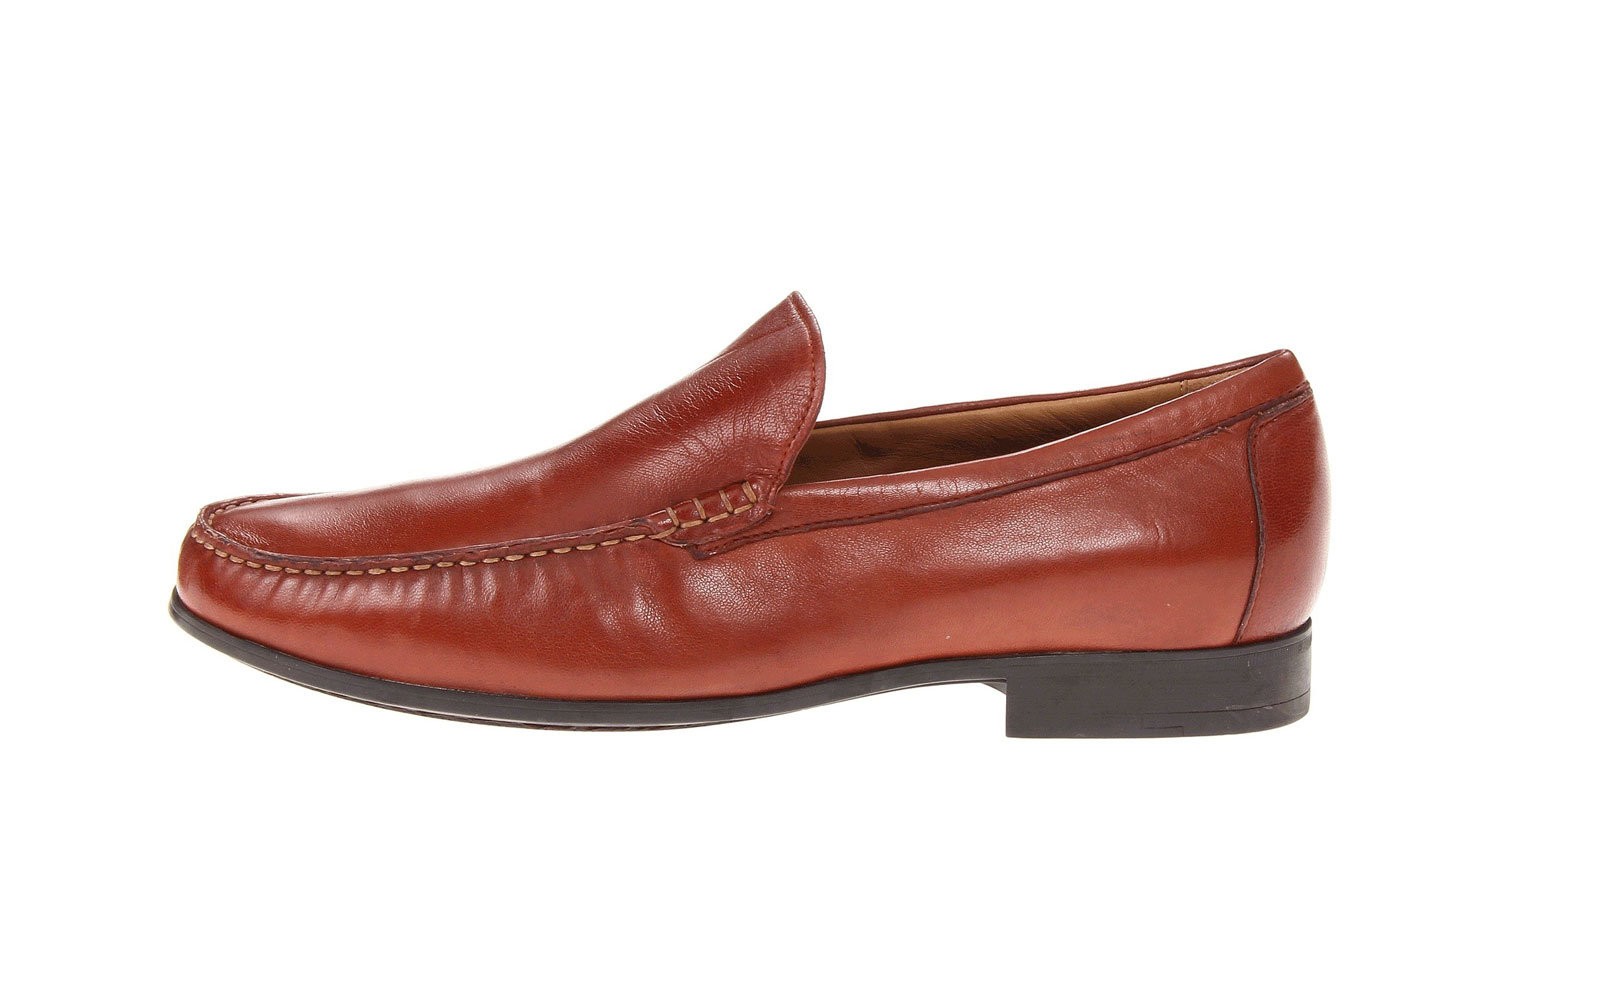 Most comfortable fashion shoes